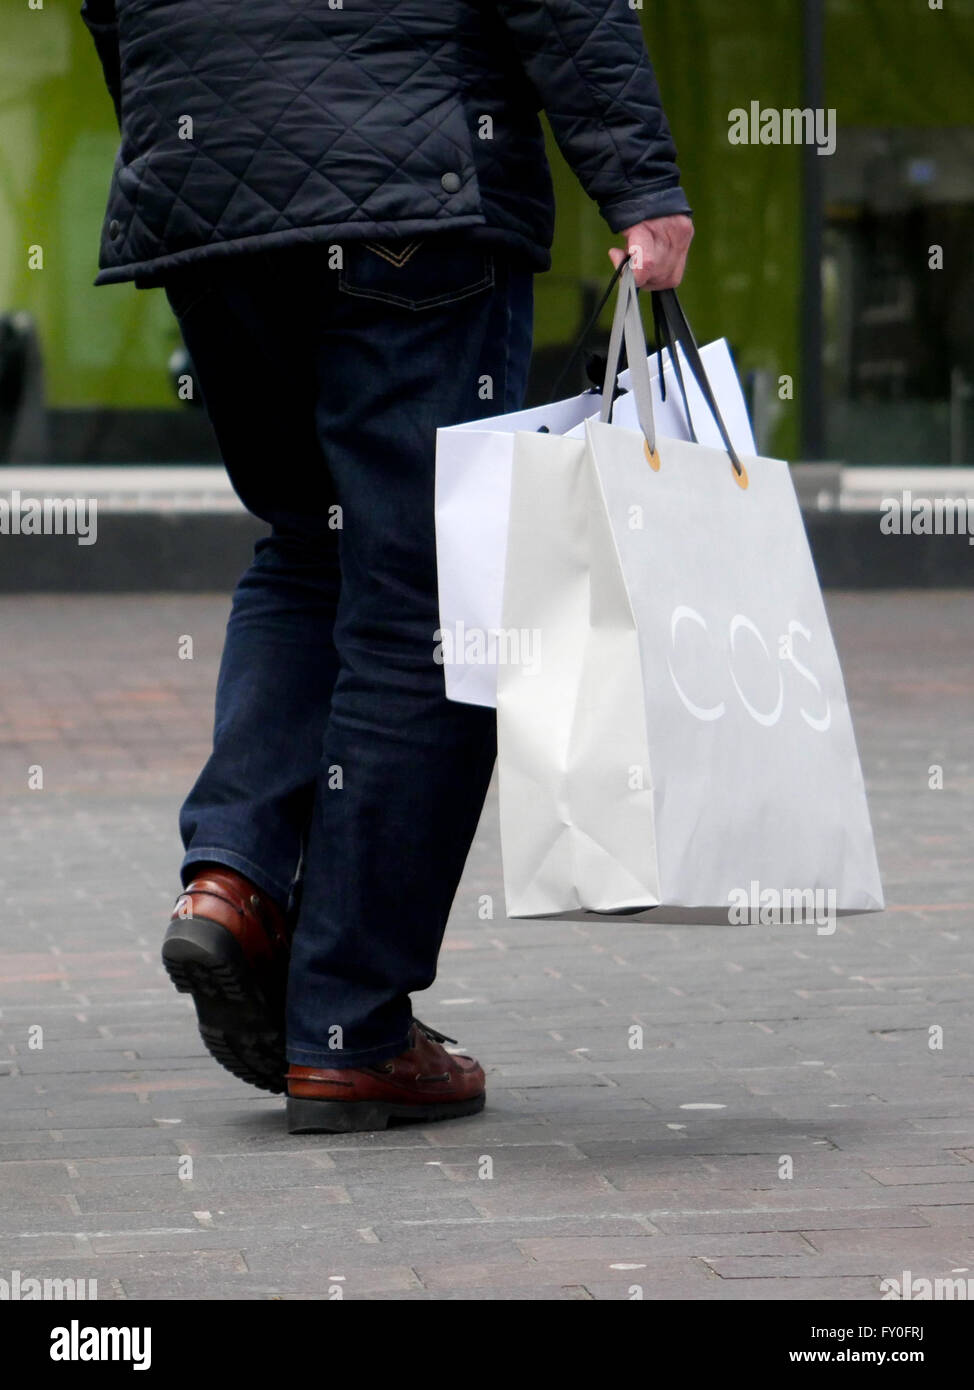 Man holding shopping bags in the street, close-up of legs - Stock Image